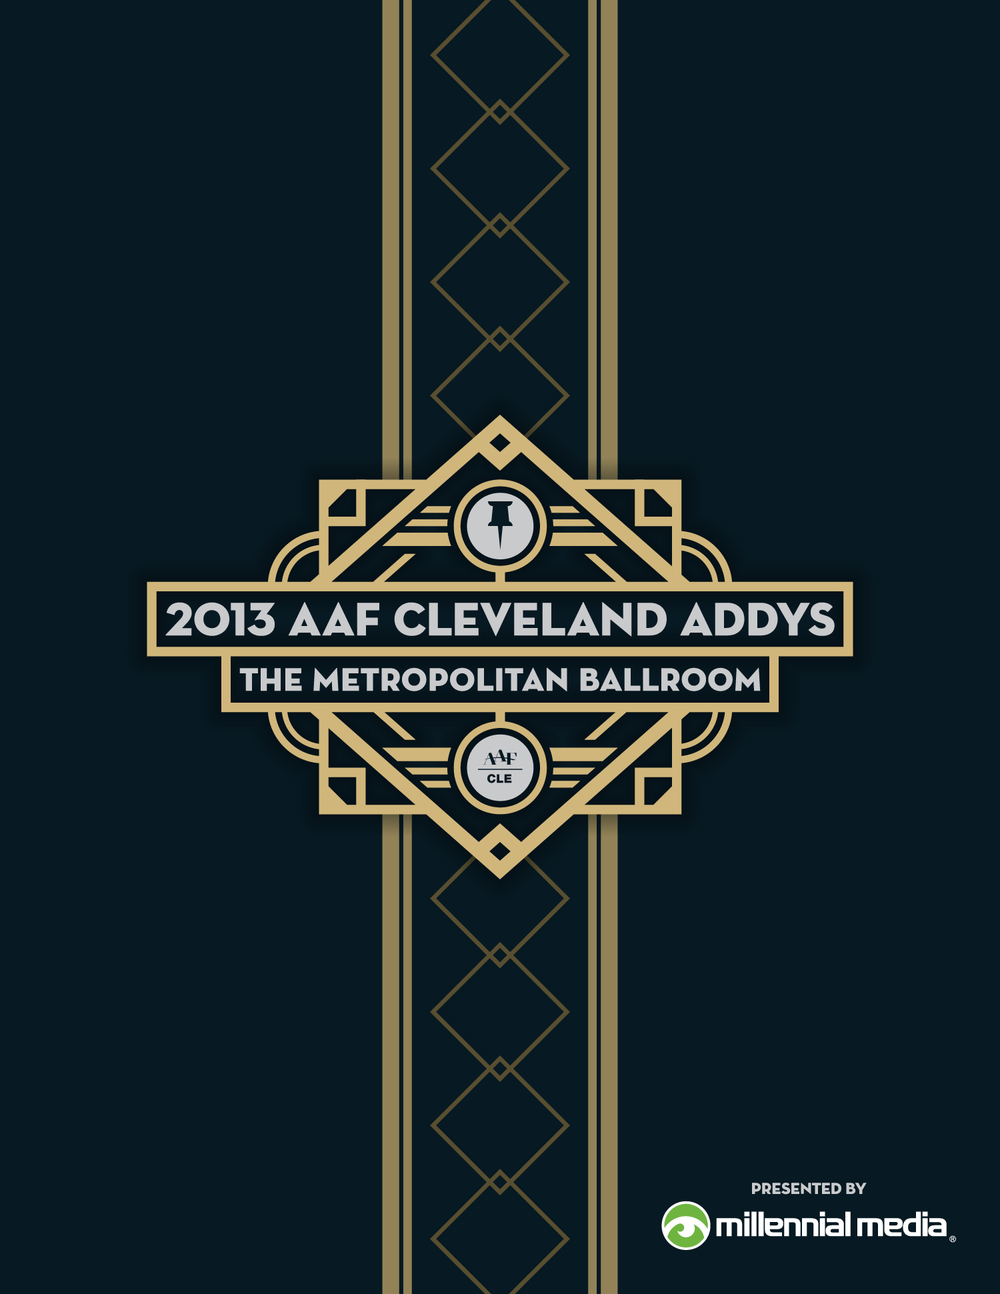 AAF Cleveland — ADDY Program Cover